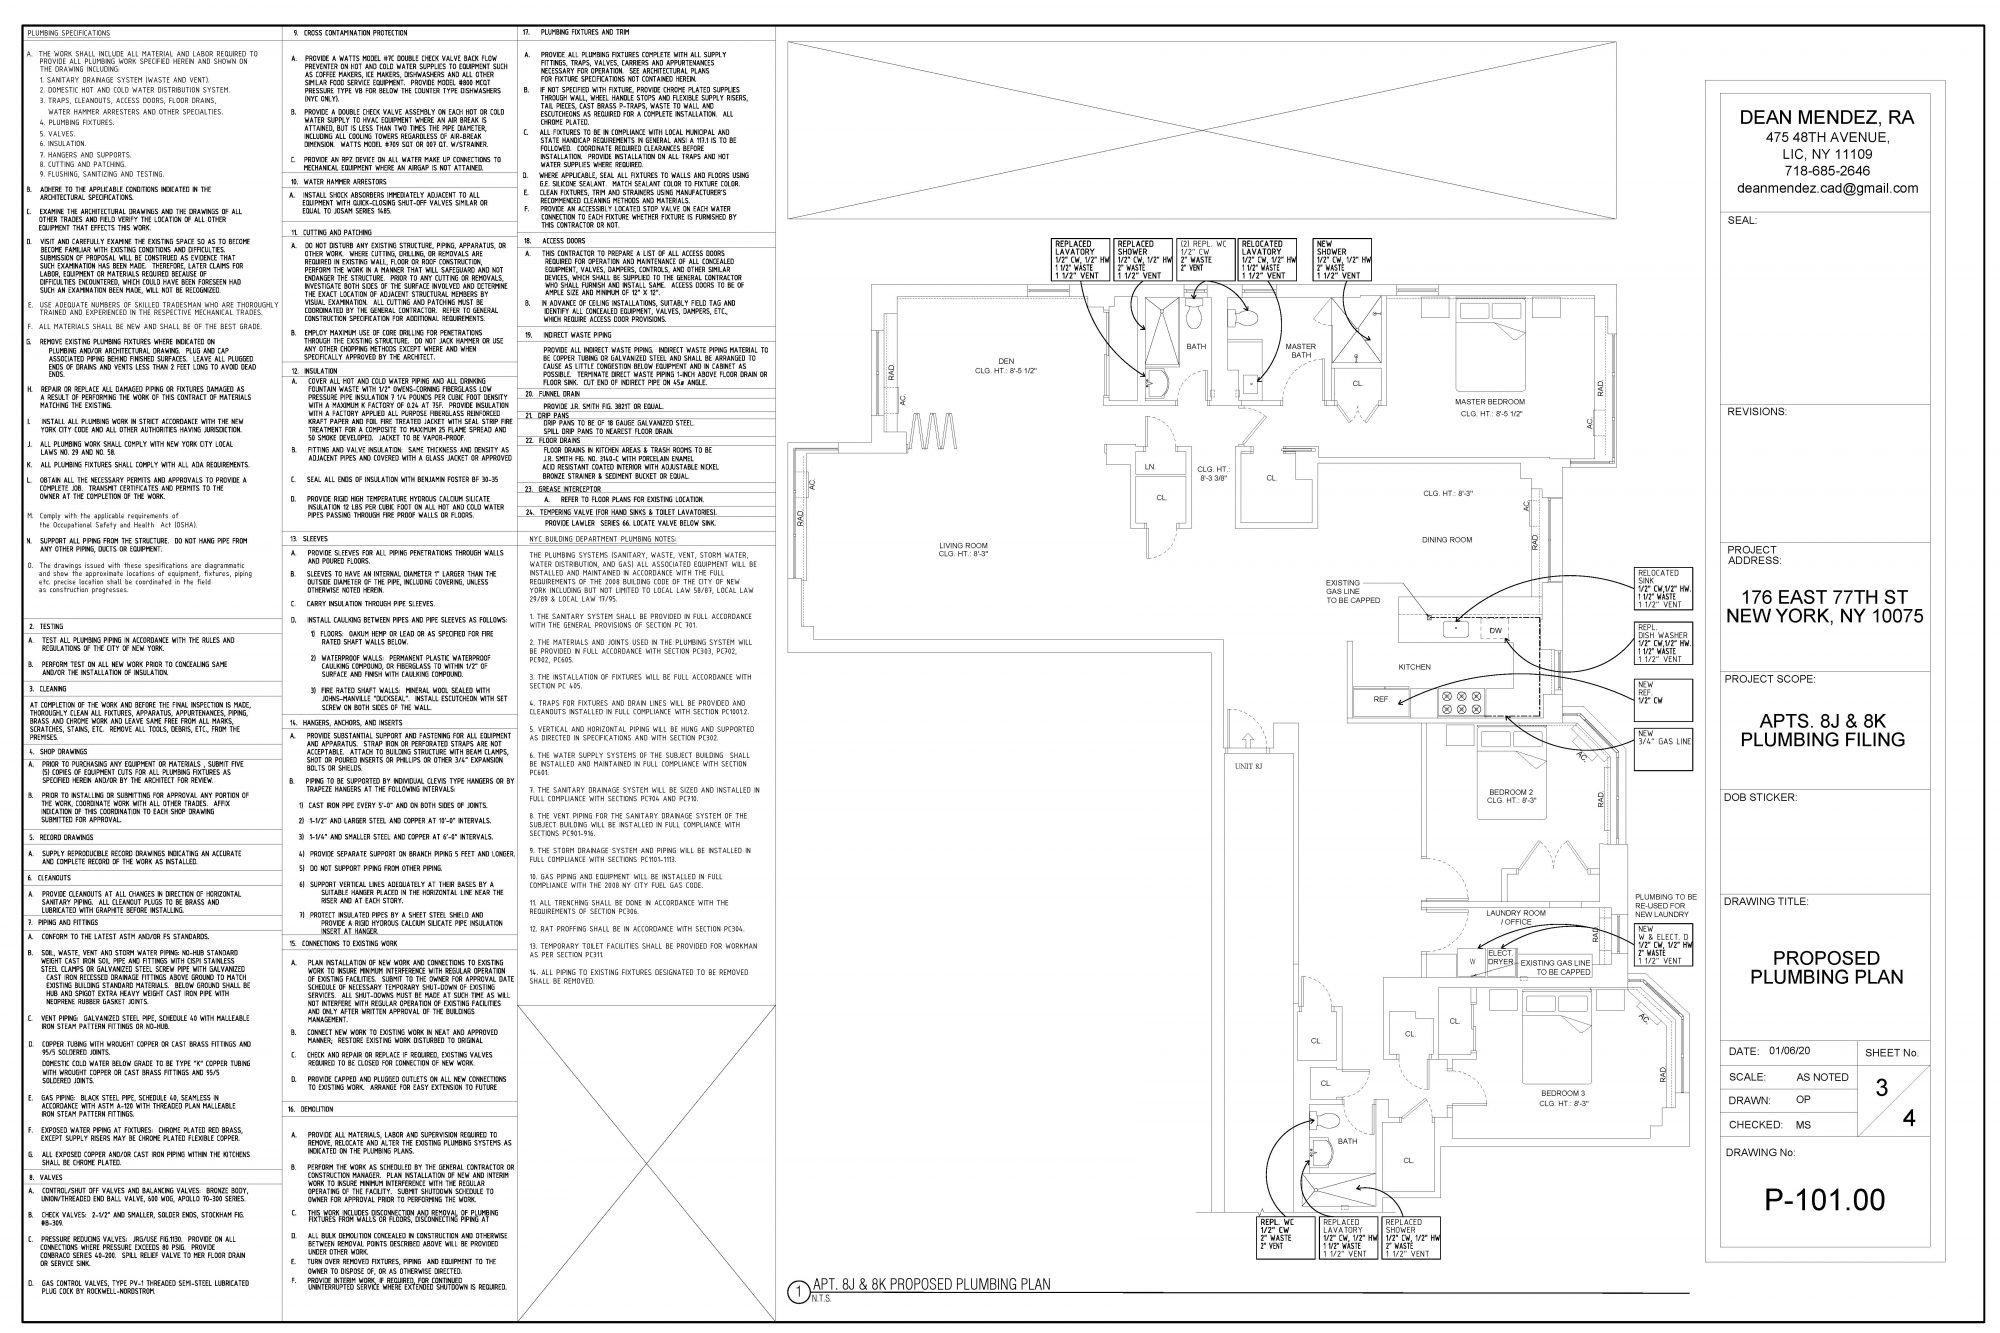 Interior Renovation Construction Drawing for New York Apartment